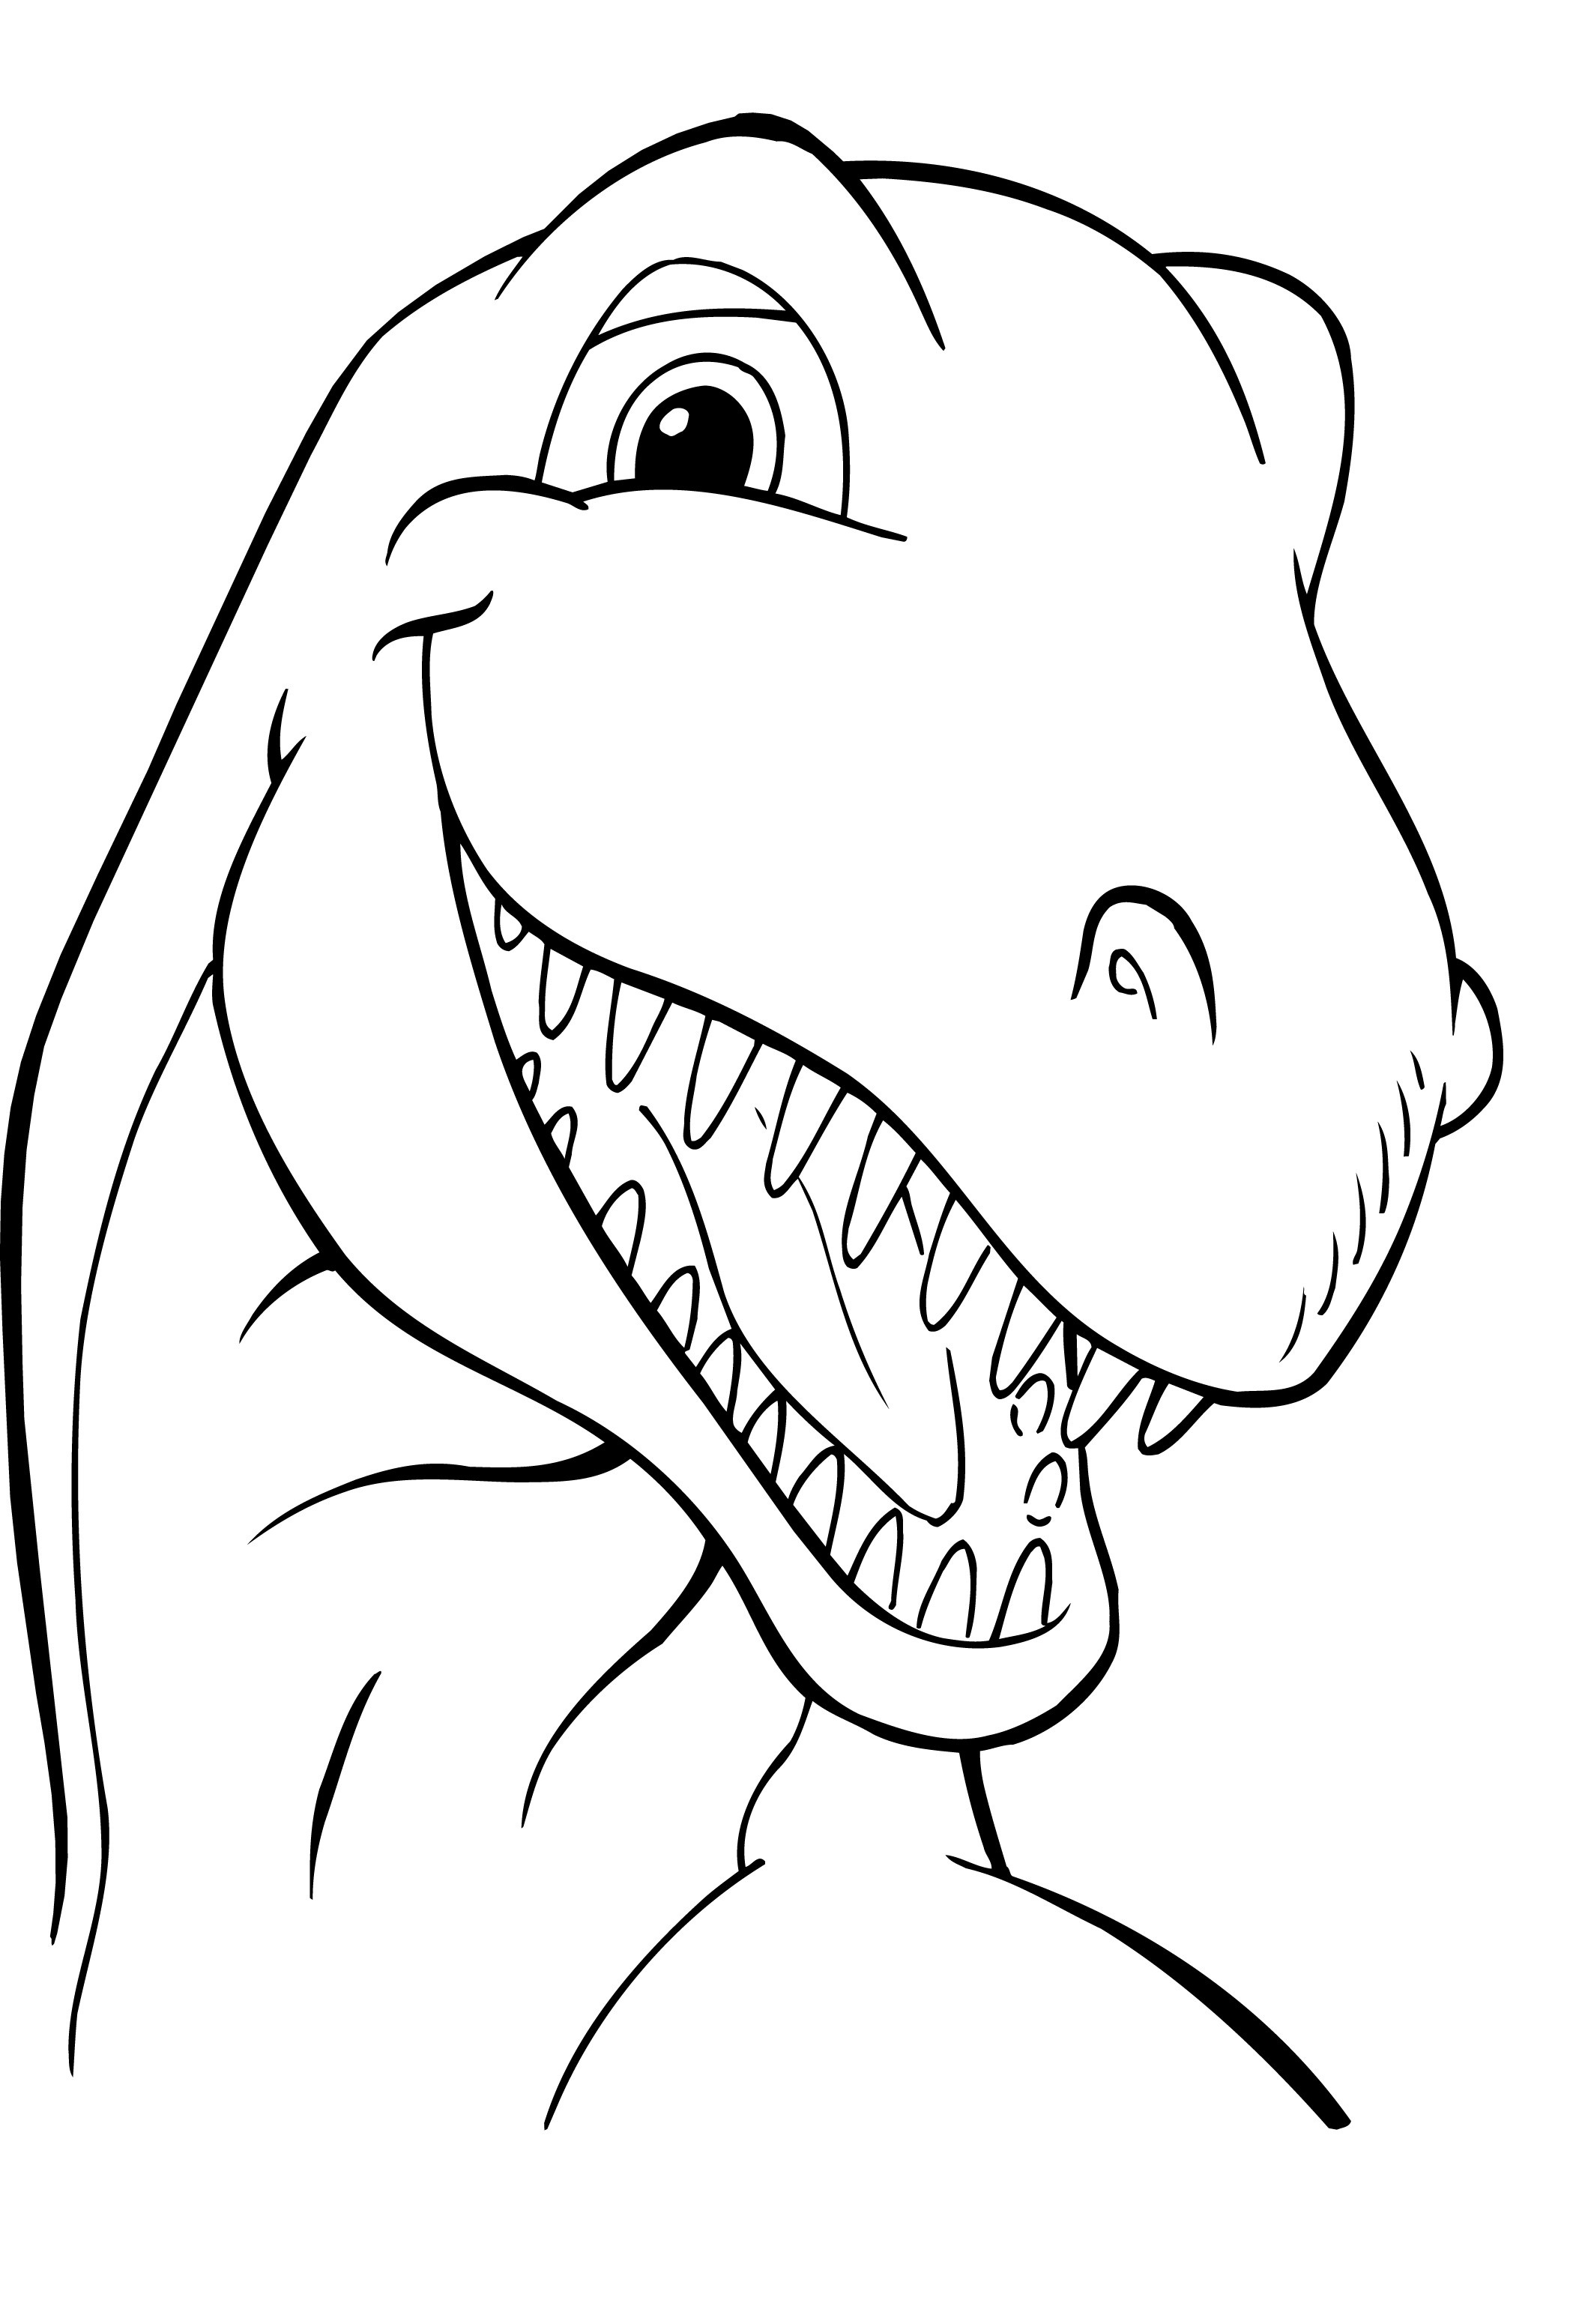 dinosaur colouring pictures to print easy dinosaur coloring pages coloring home pictures colouring print to dinosaur